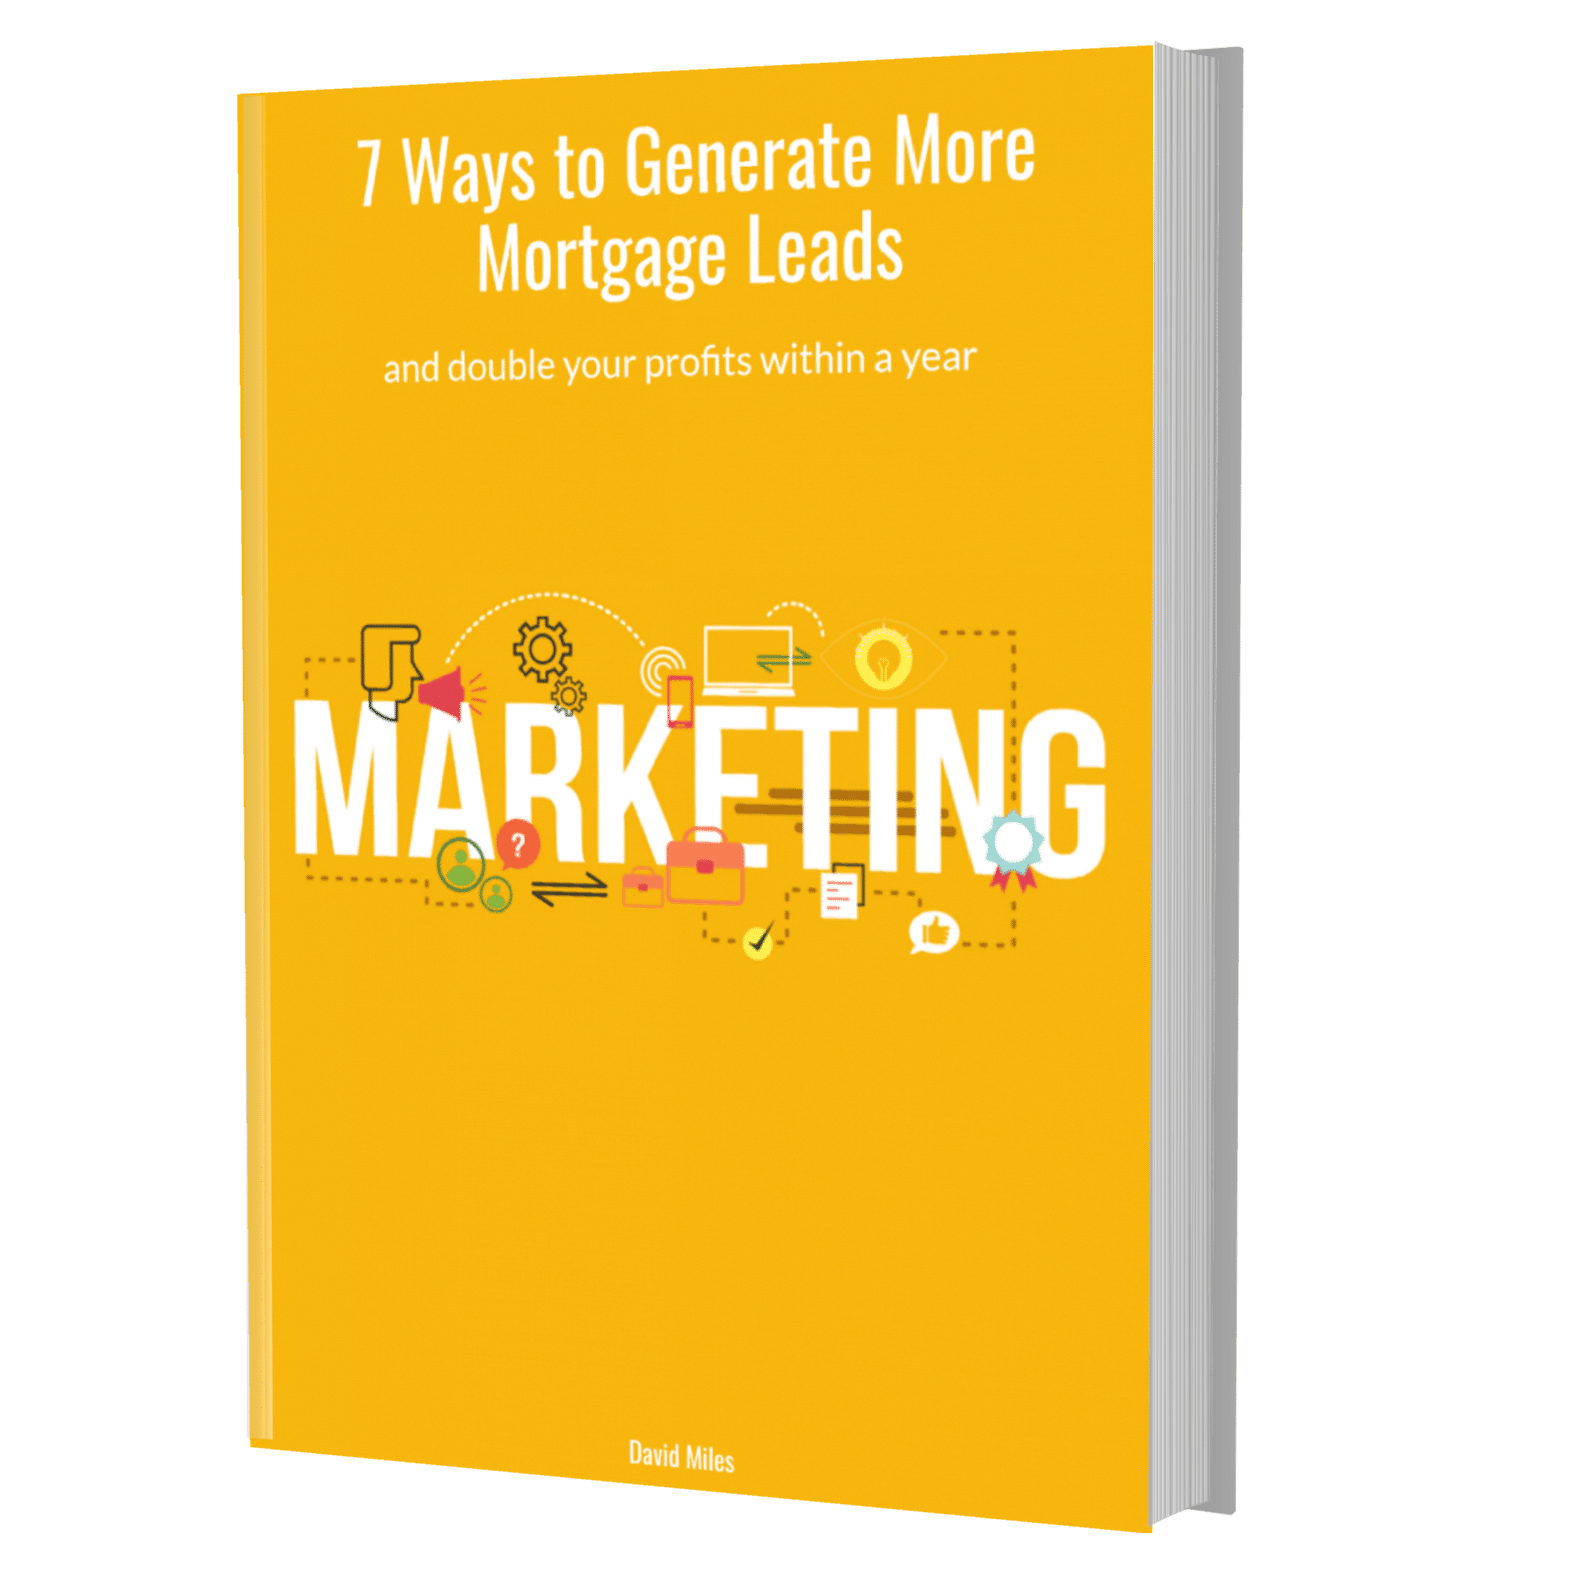 get more mortgage leads - 3 Easy Ways to Get More Mortgage Leads